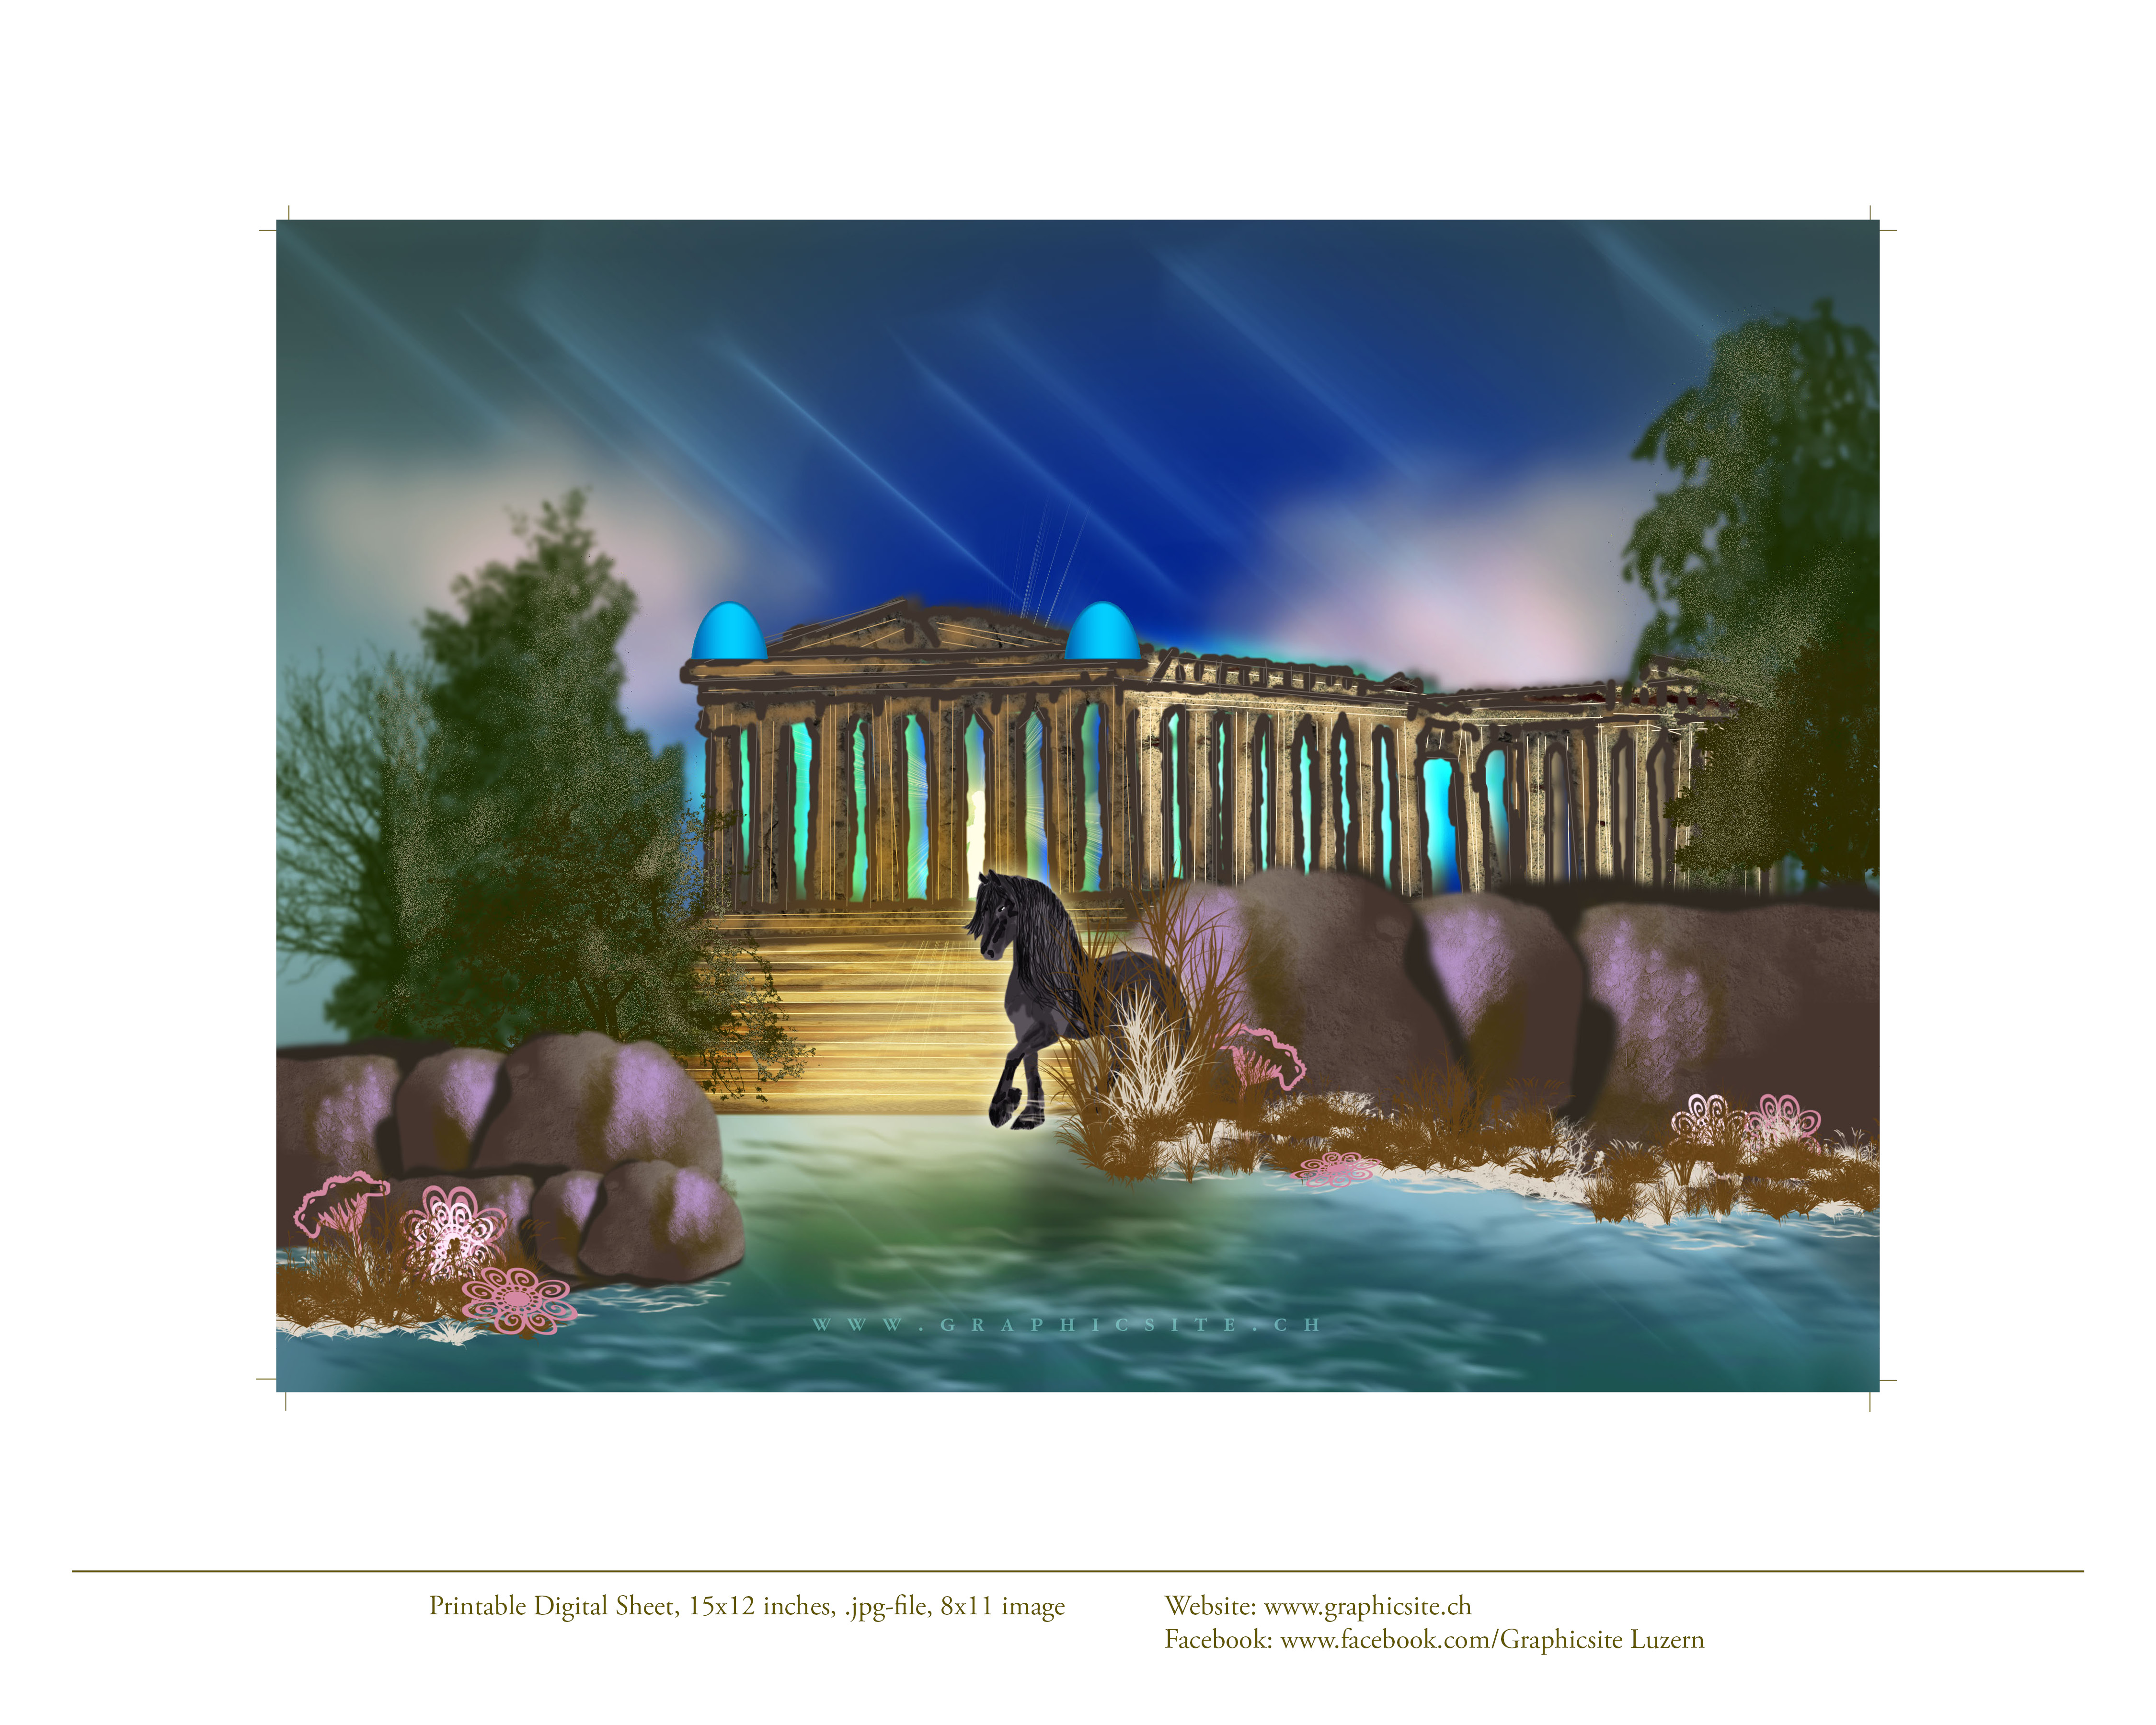 Printable Digital Image - 8 x 11 inches - Akropolis, Greece, Digital, Painting, Graphic Design,